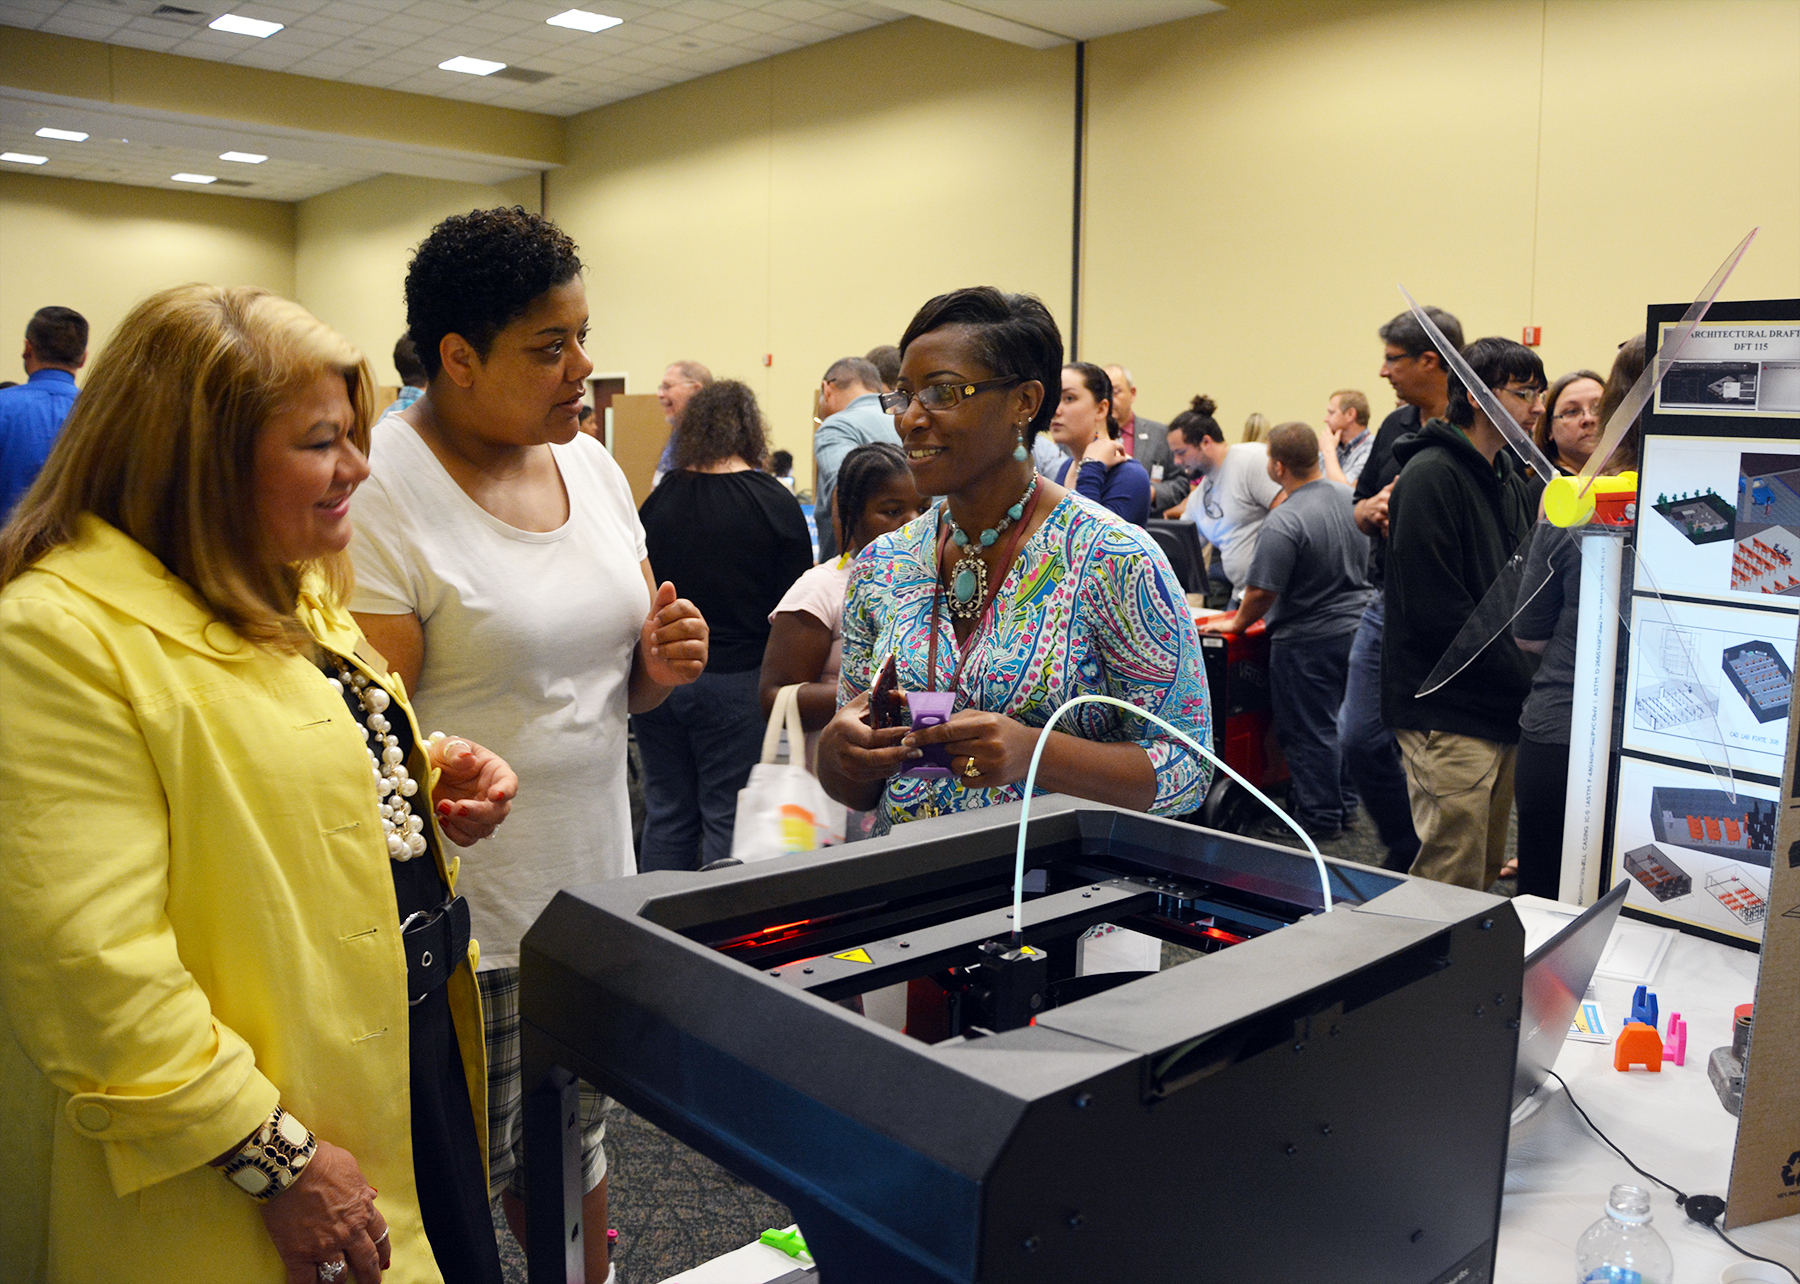 Mechanical Engineering lead instructor Annie Smith, right, explains how her students design parts and then print them on a 3D printer, which she had on display during last year's RichmondCC Open House. This year's Open House is scheduled for Thursday, April 27, from 5:30 to 7:30 p.m. at the Cole Auditorium.